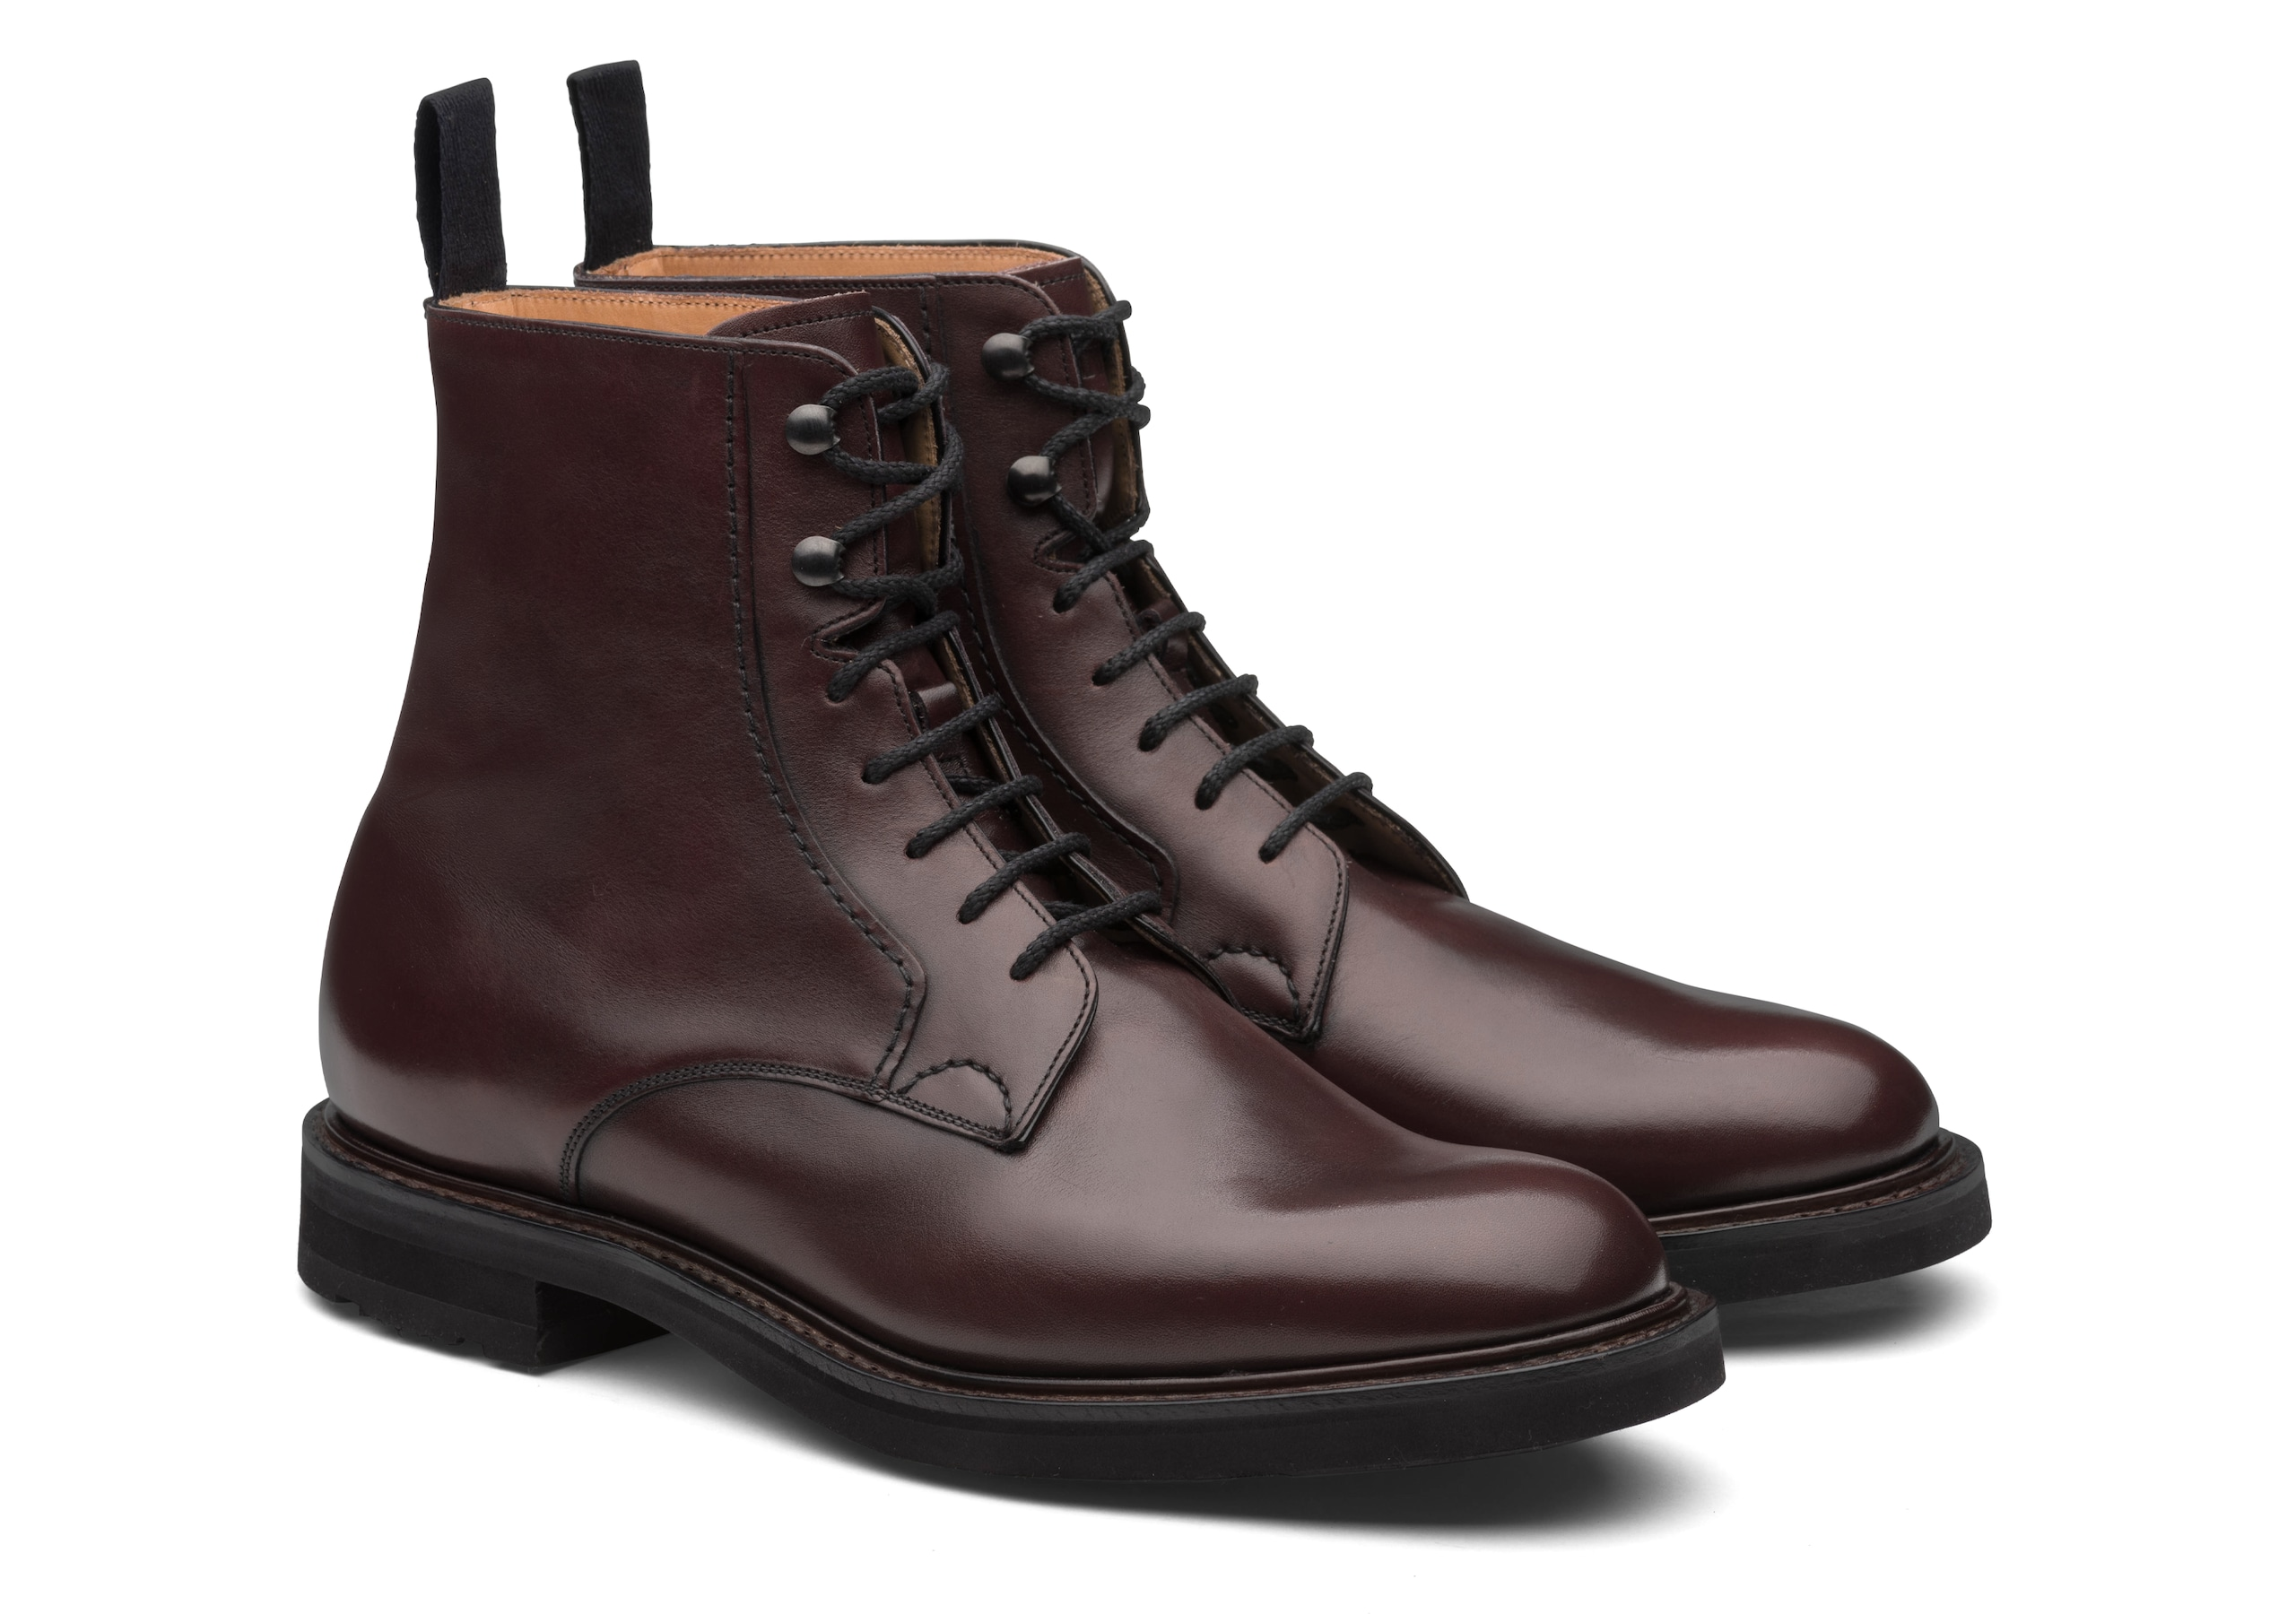 Wootton lw Church's Calf Leather Lace-Up Boot Brown